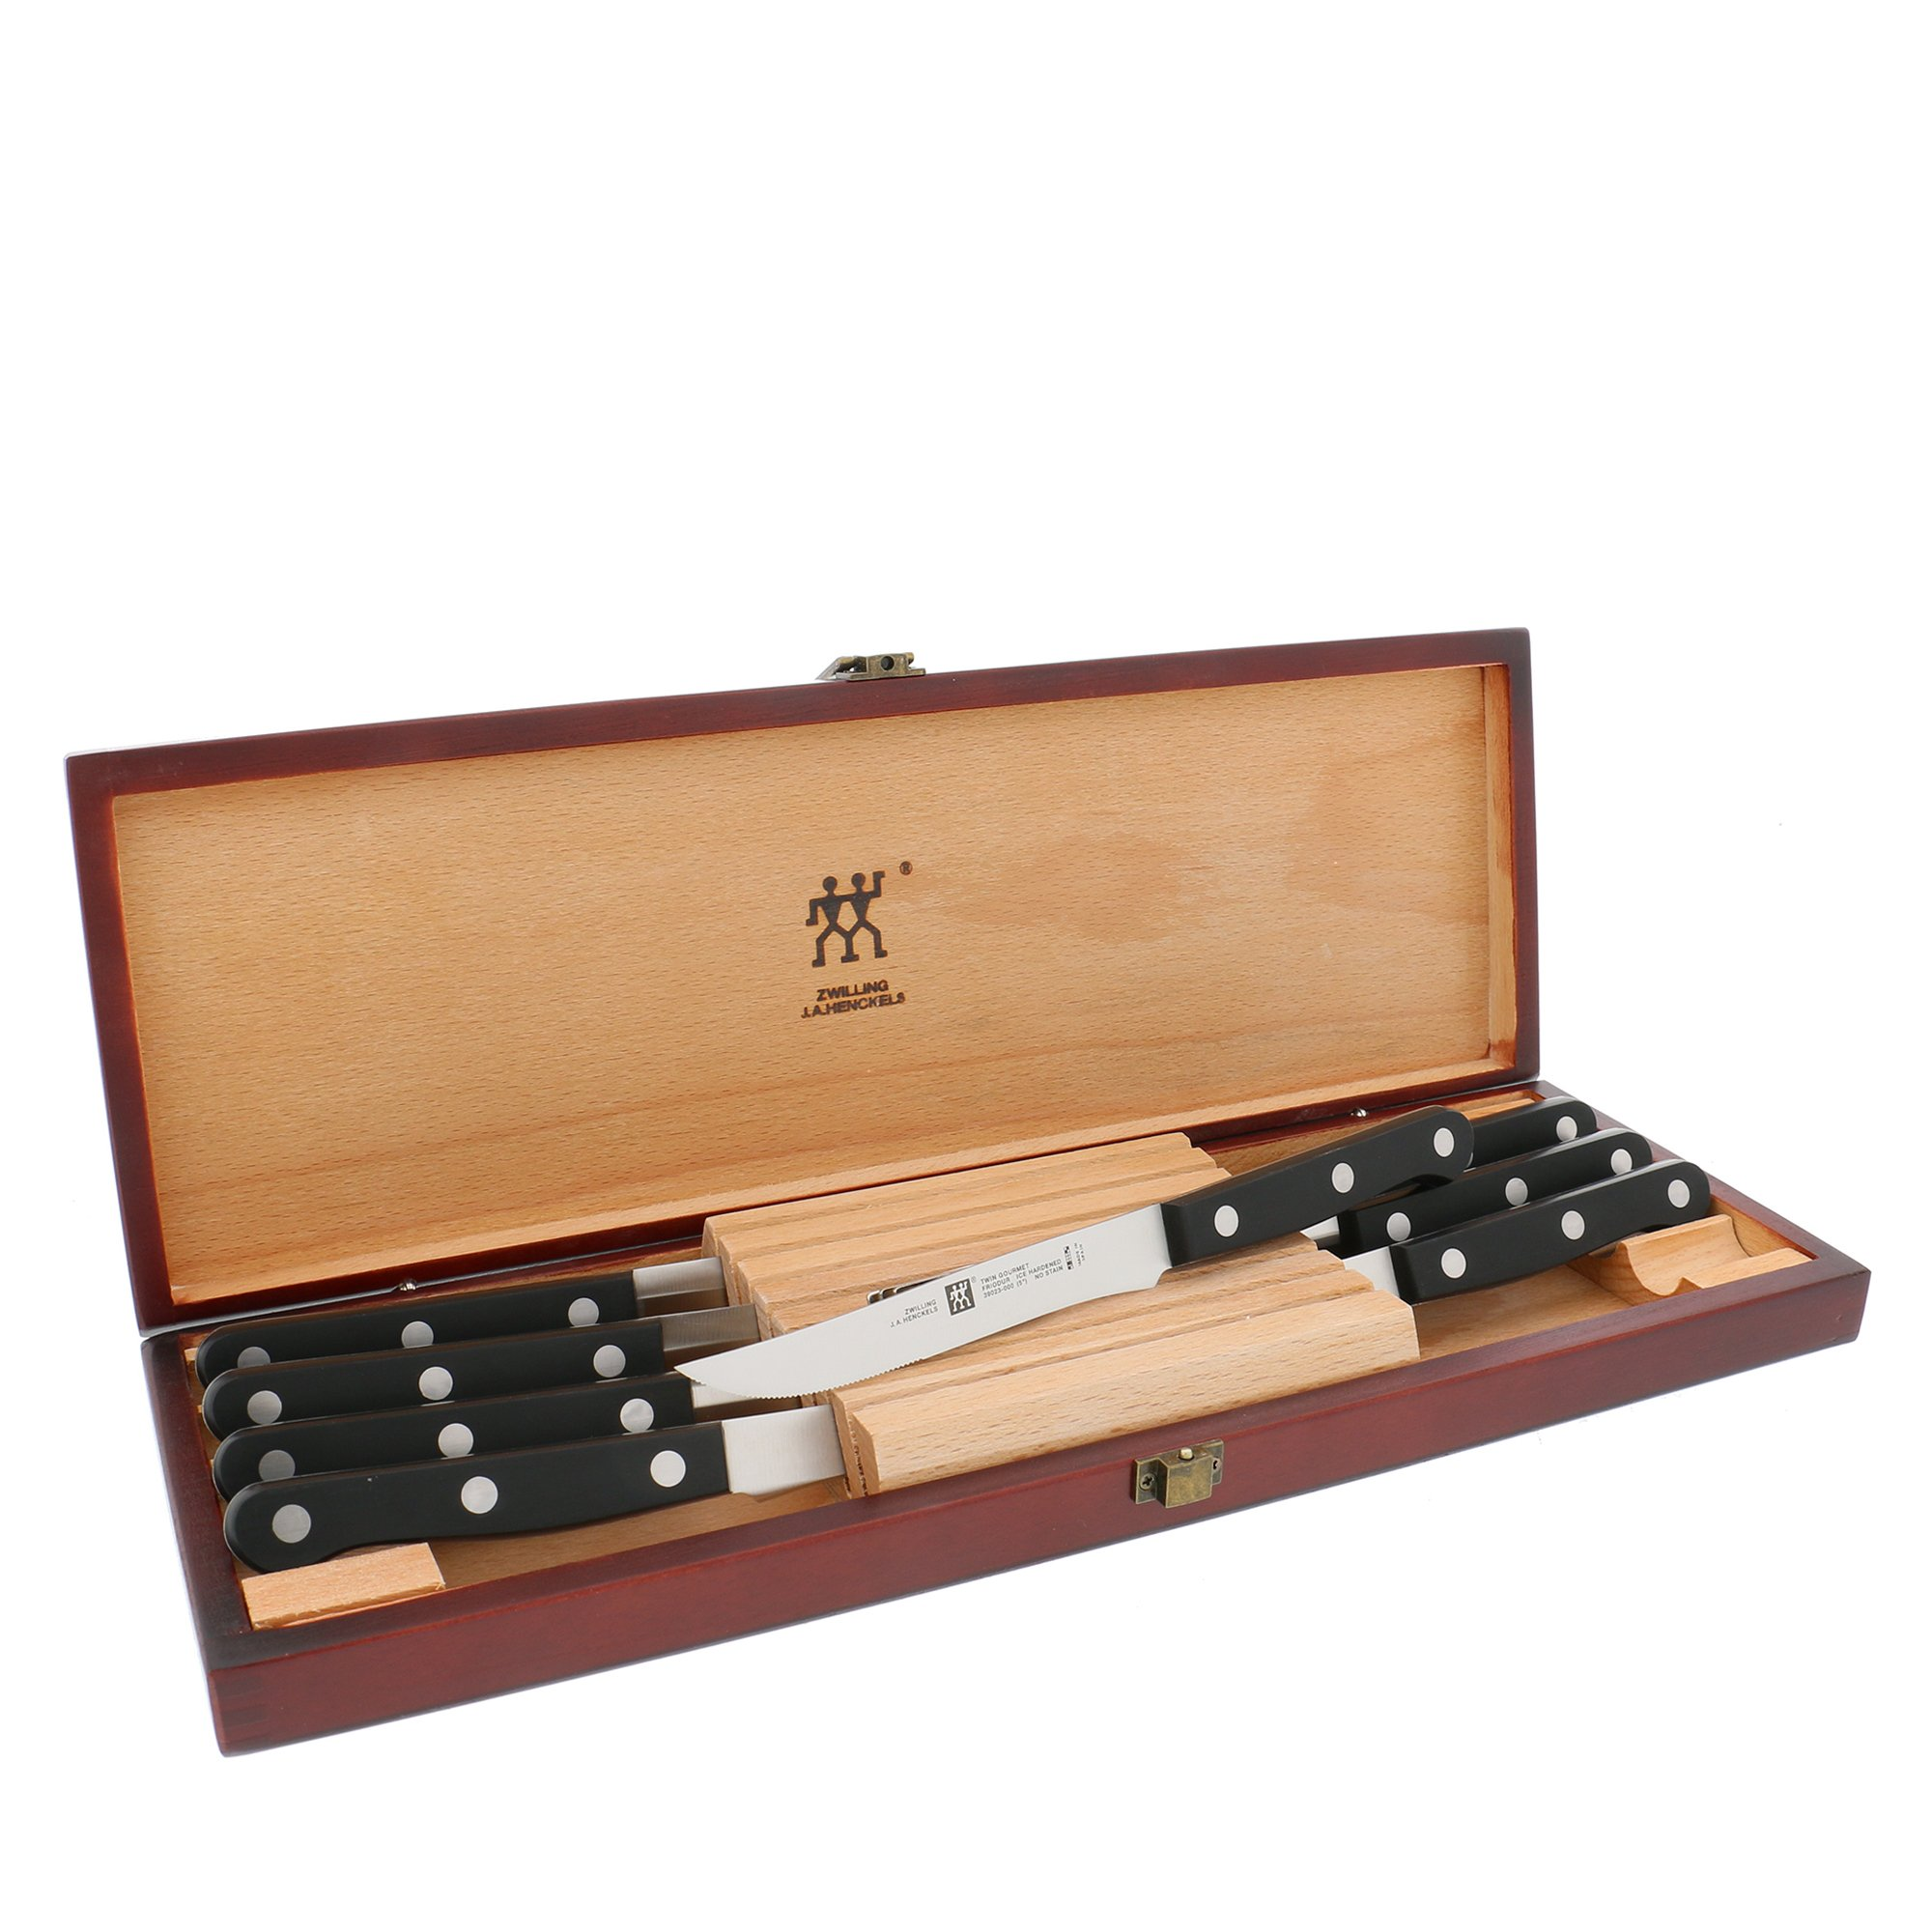 Zwilling J.A. Henckels Twin Gourmet 8-Piece Steak Knife Set with Box by ZWILLING J.A. Henckels (Image #1)